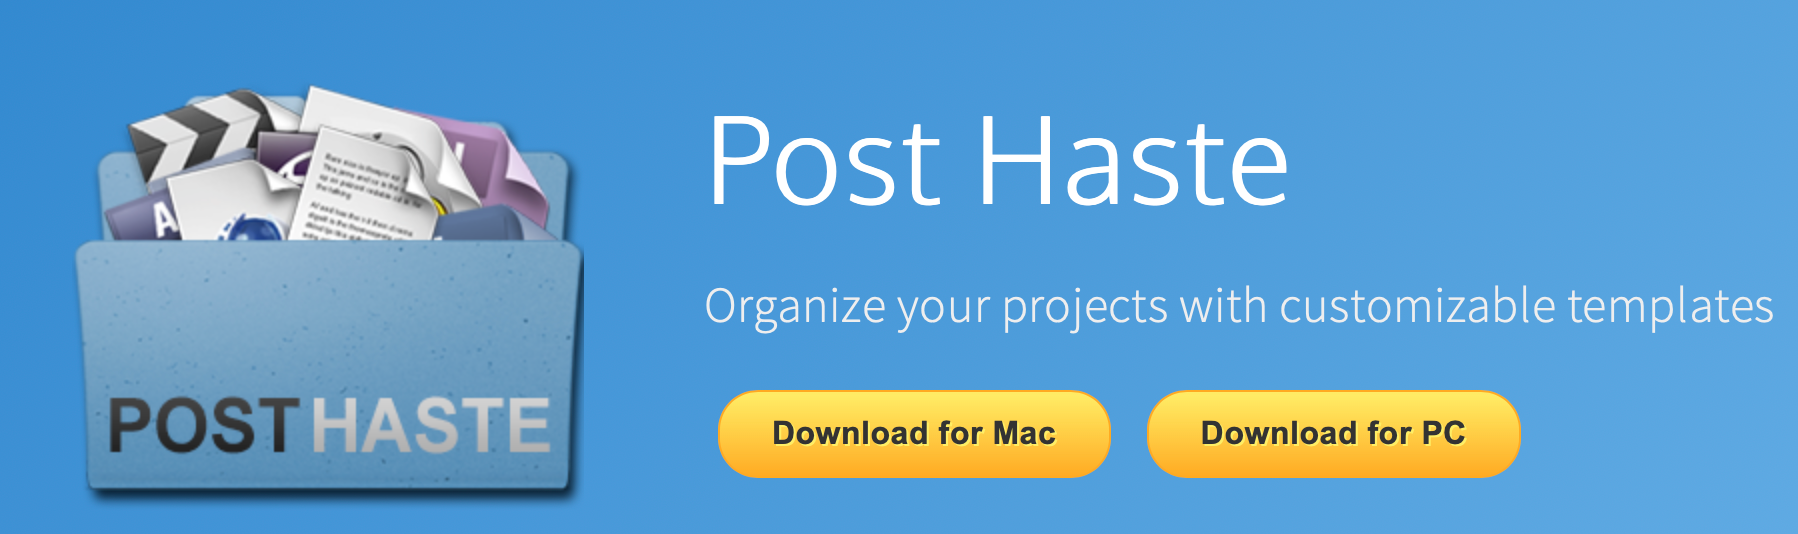 Post Haste free organizational software for AE